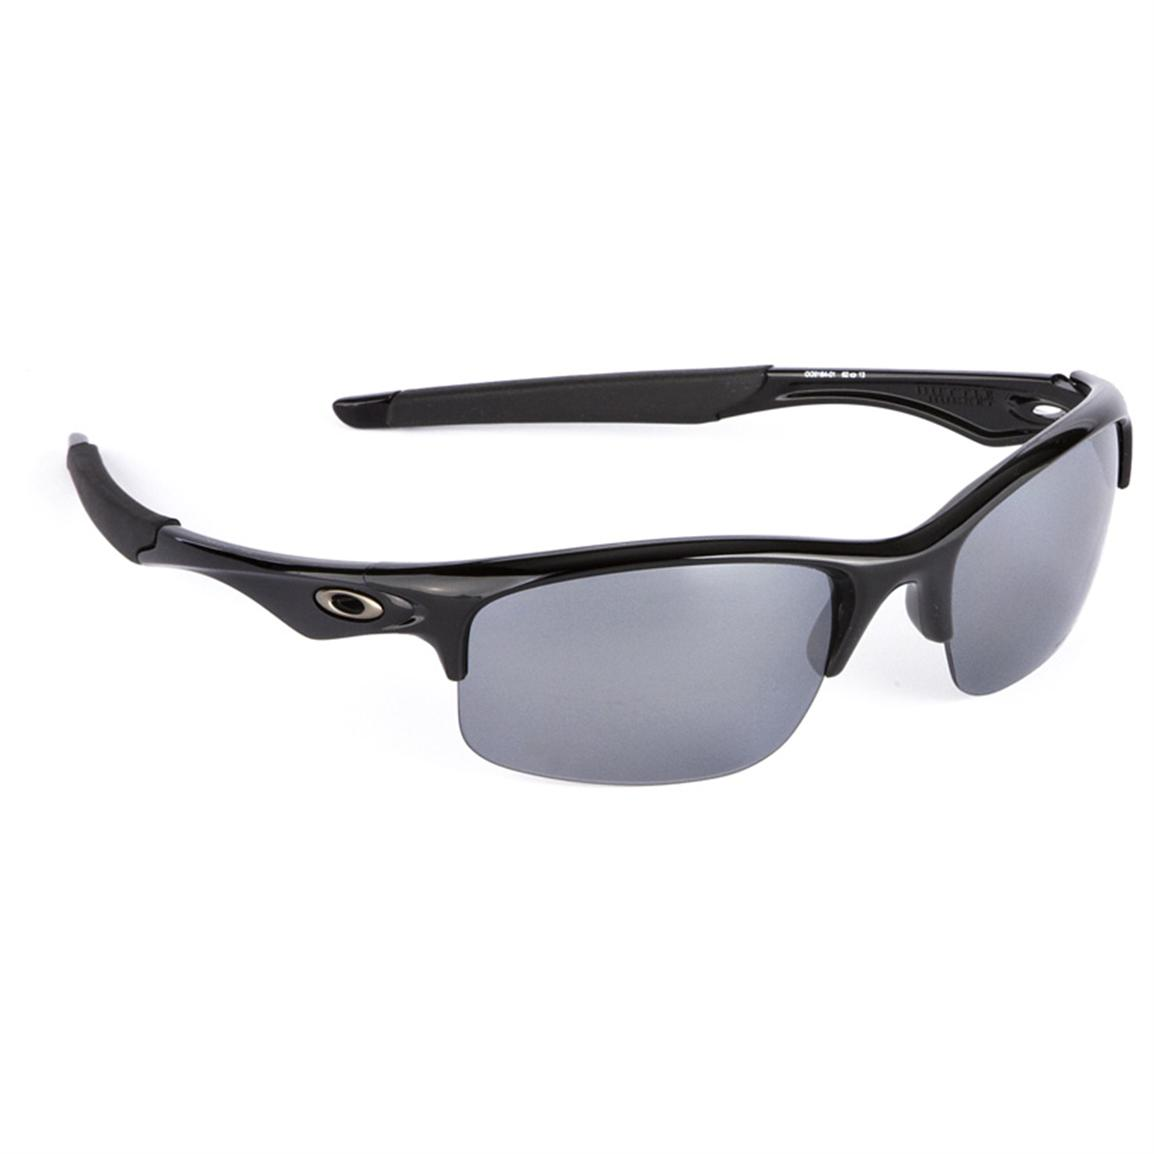 Oakley Bottle Rocket Polarized Sunglasses, Black